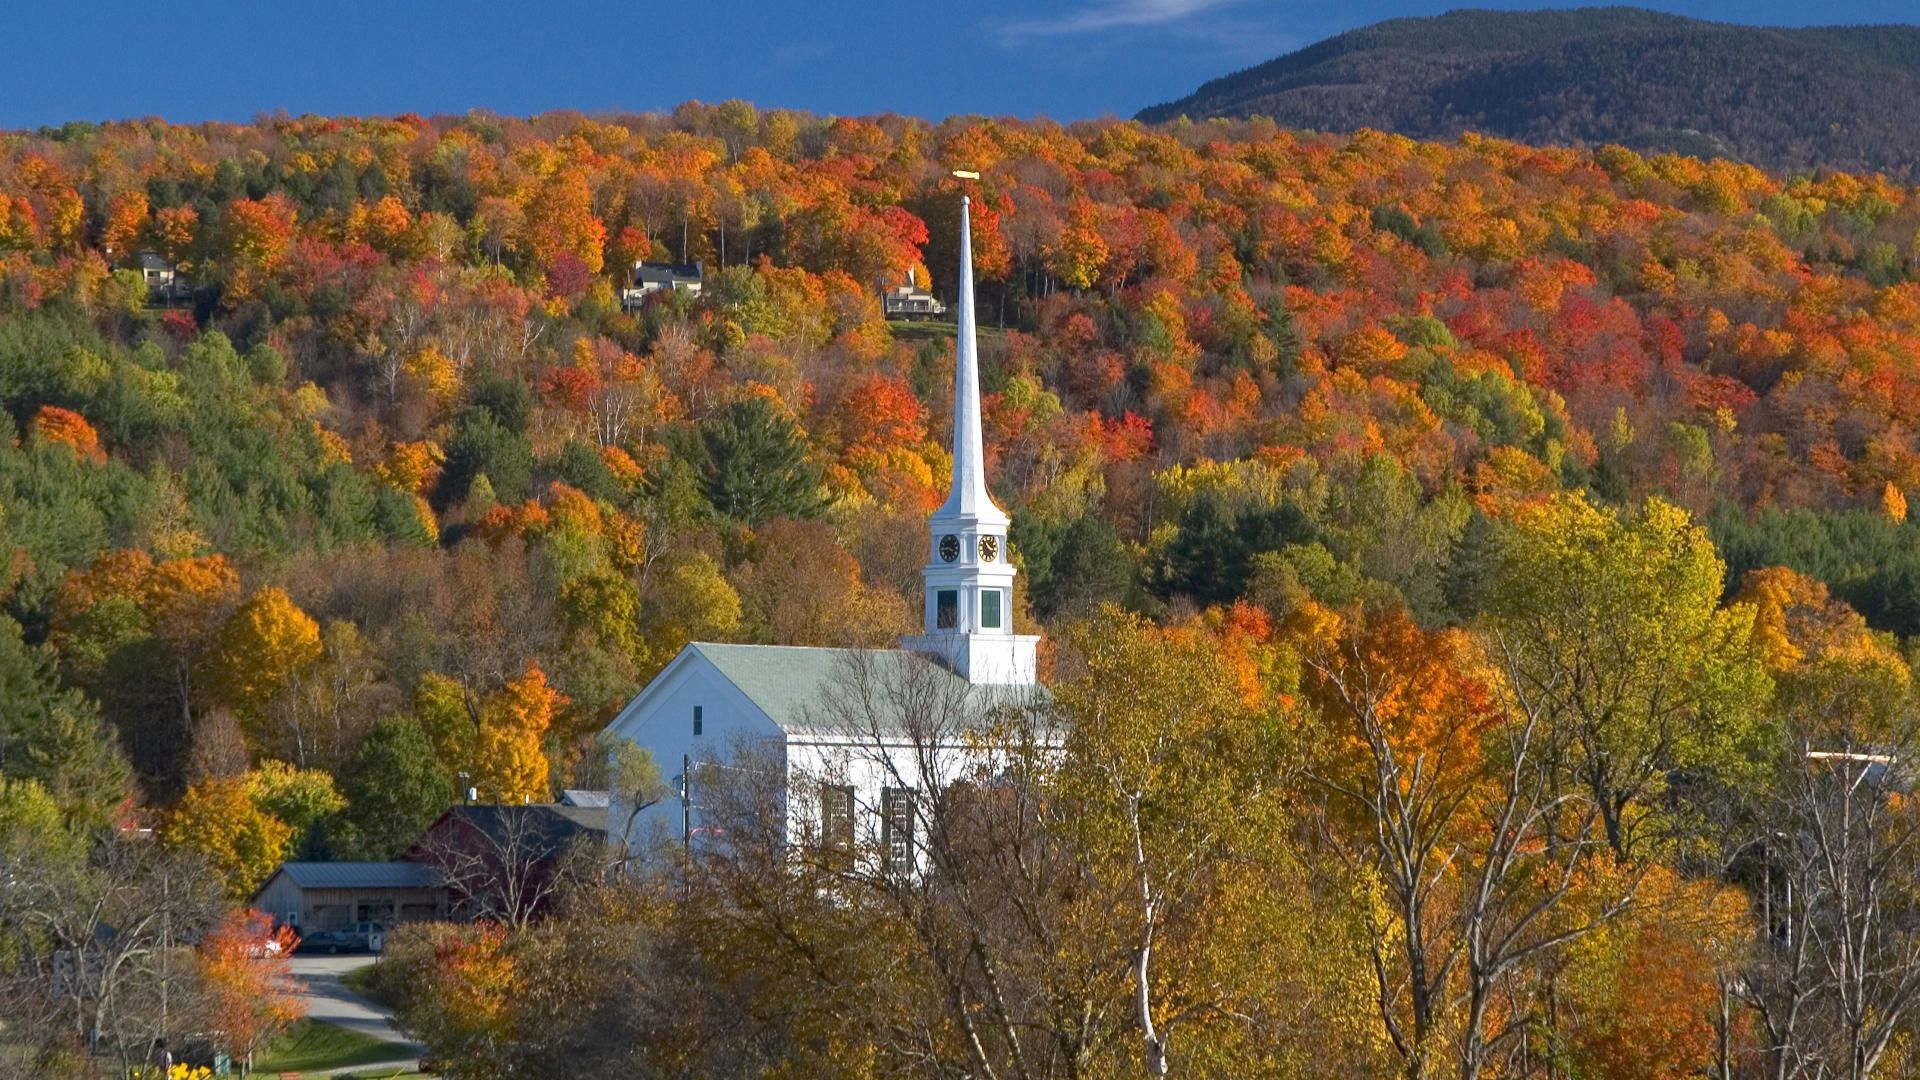 Vermont chapel | Stowe vermont, Fall foliage vermont, Travel images